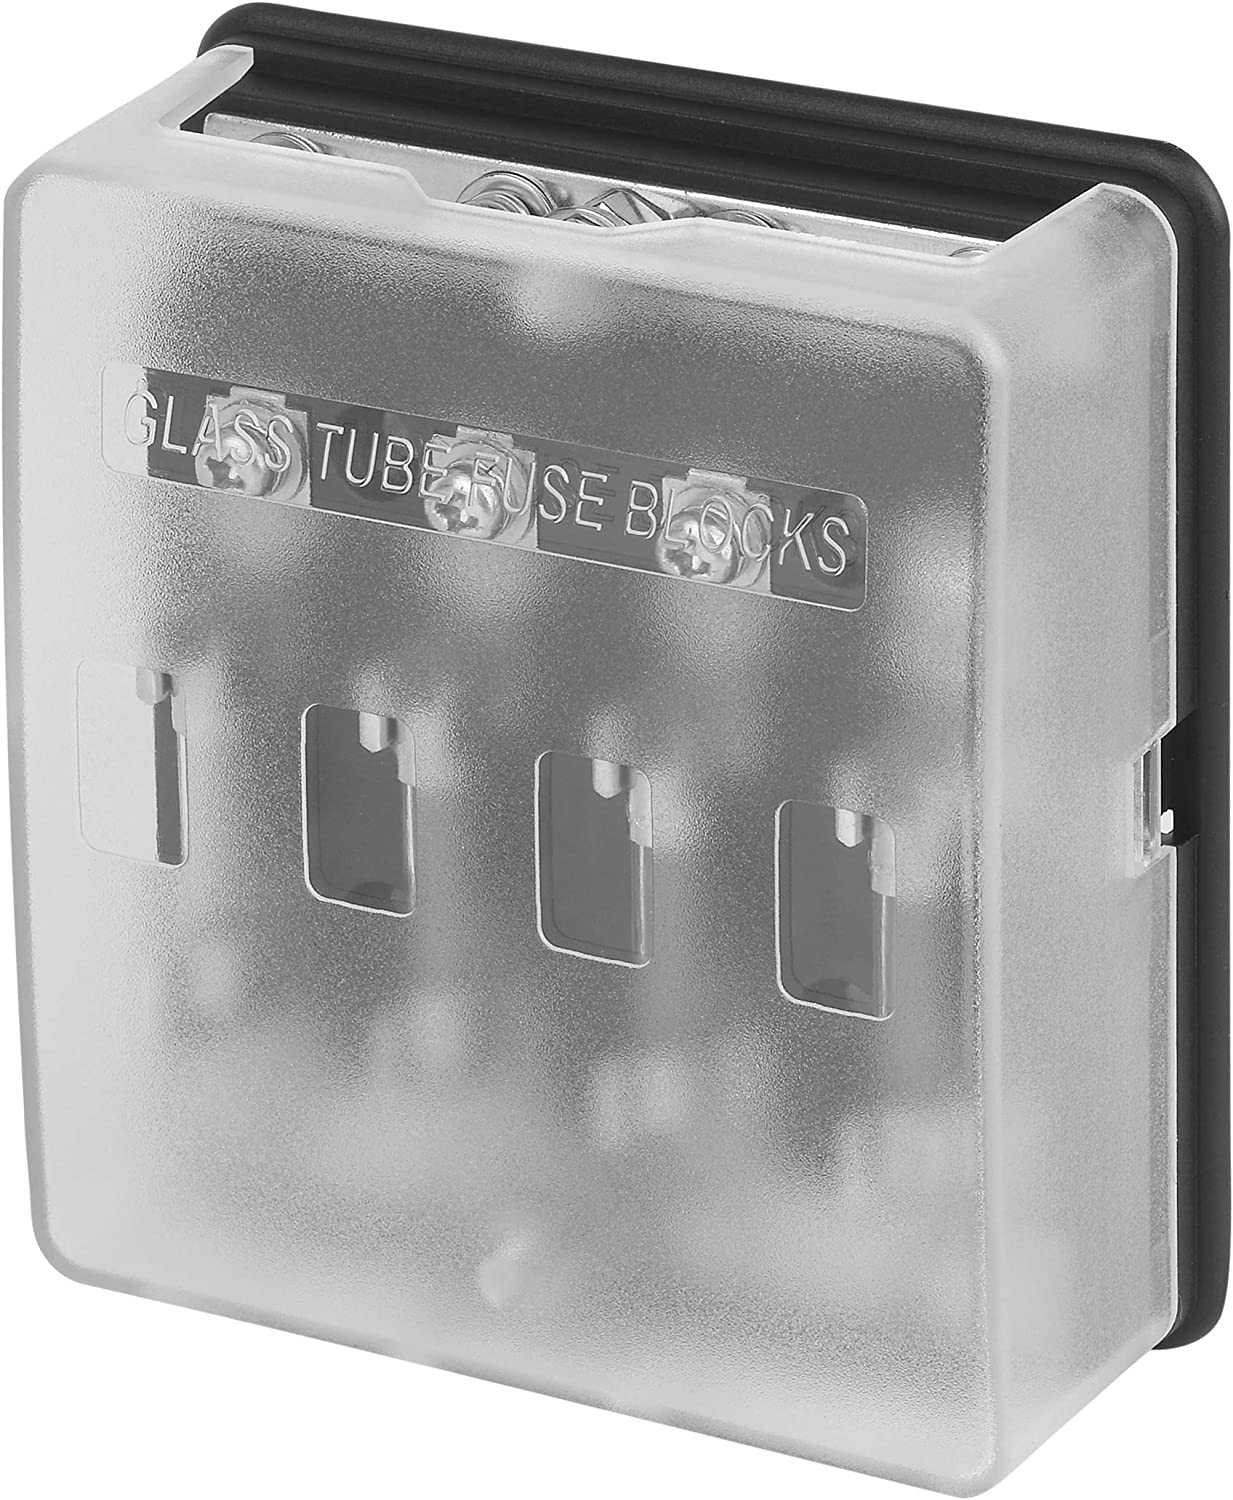 Jtron 8 Way Fuse Distribution Box with Ground 8 way fuse holder Bolt Connect Terminals With Protection Cover Glass Tube Fuse Block W//Negative Bus for Automotive Vehicle Boat Marine 32V 100A